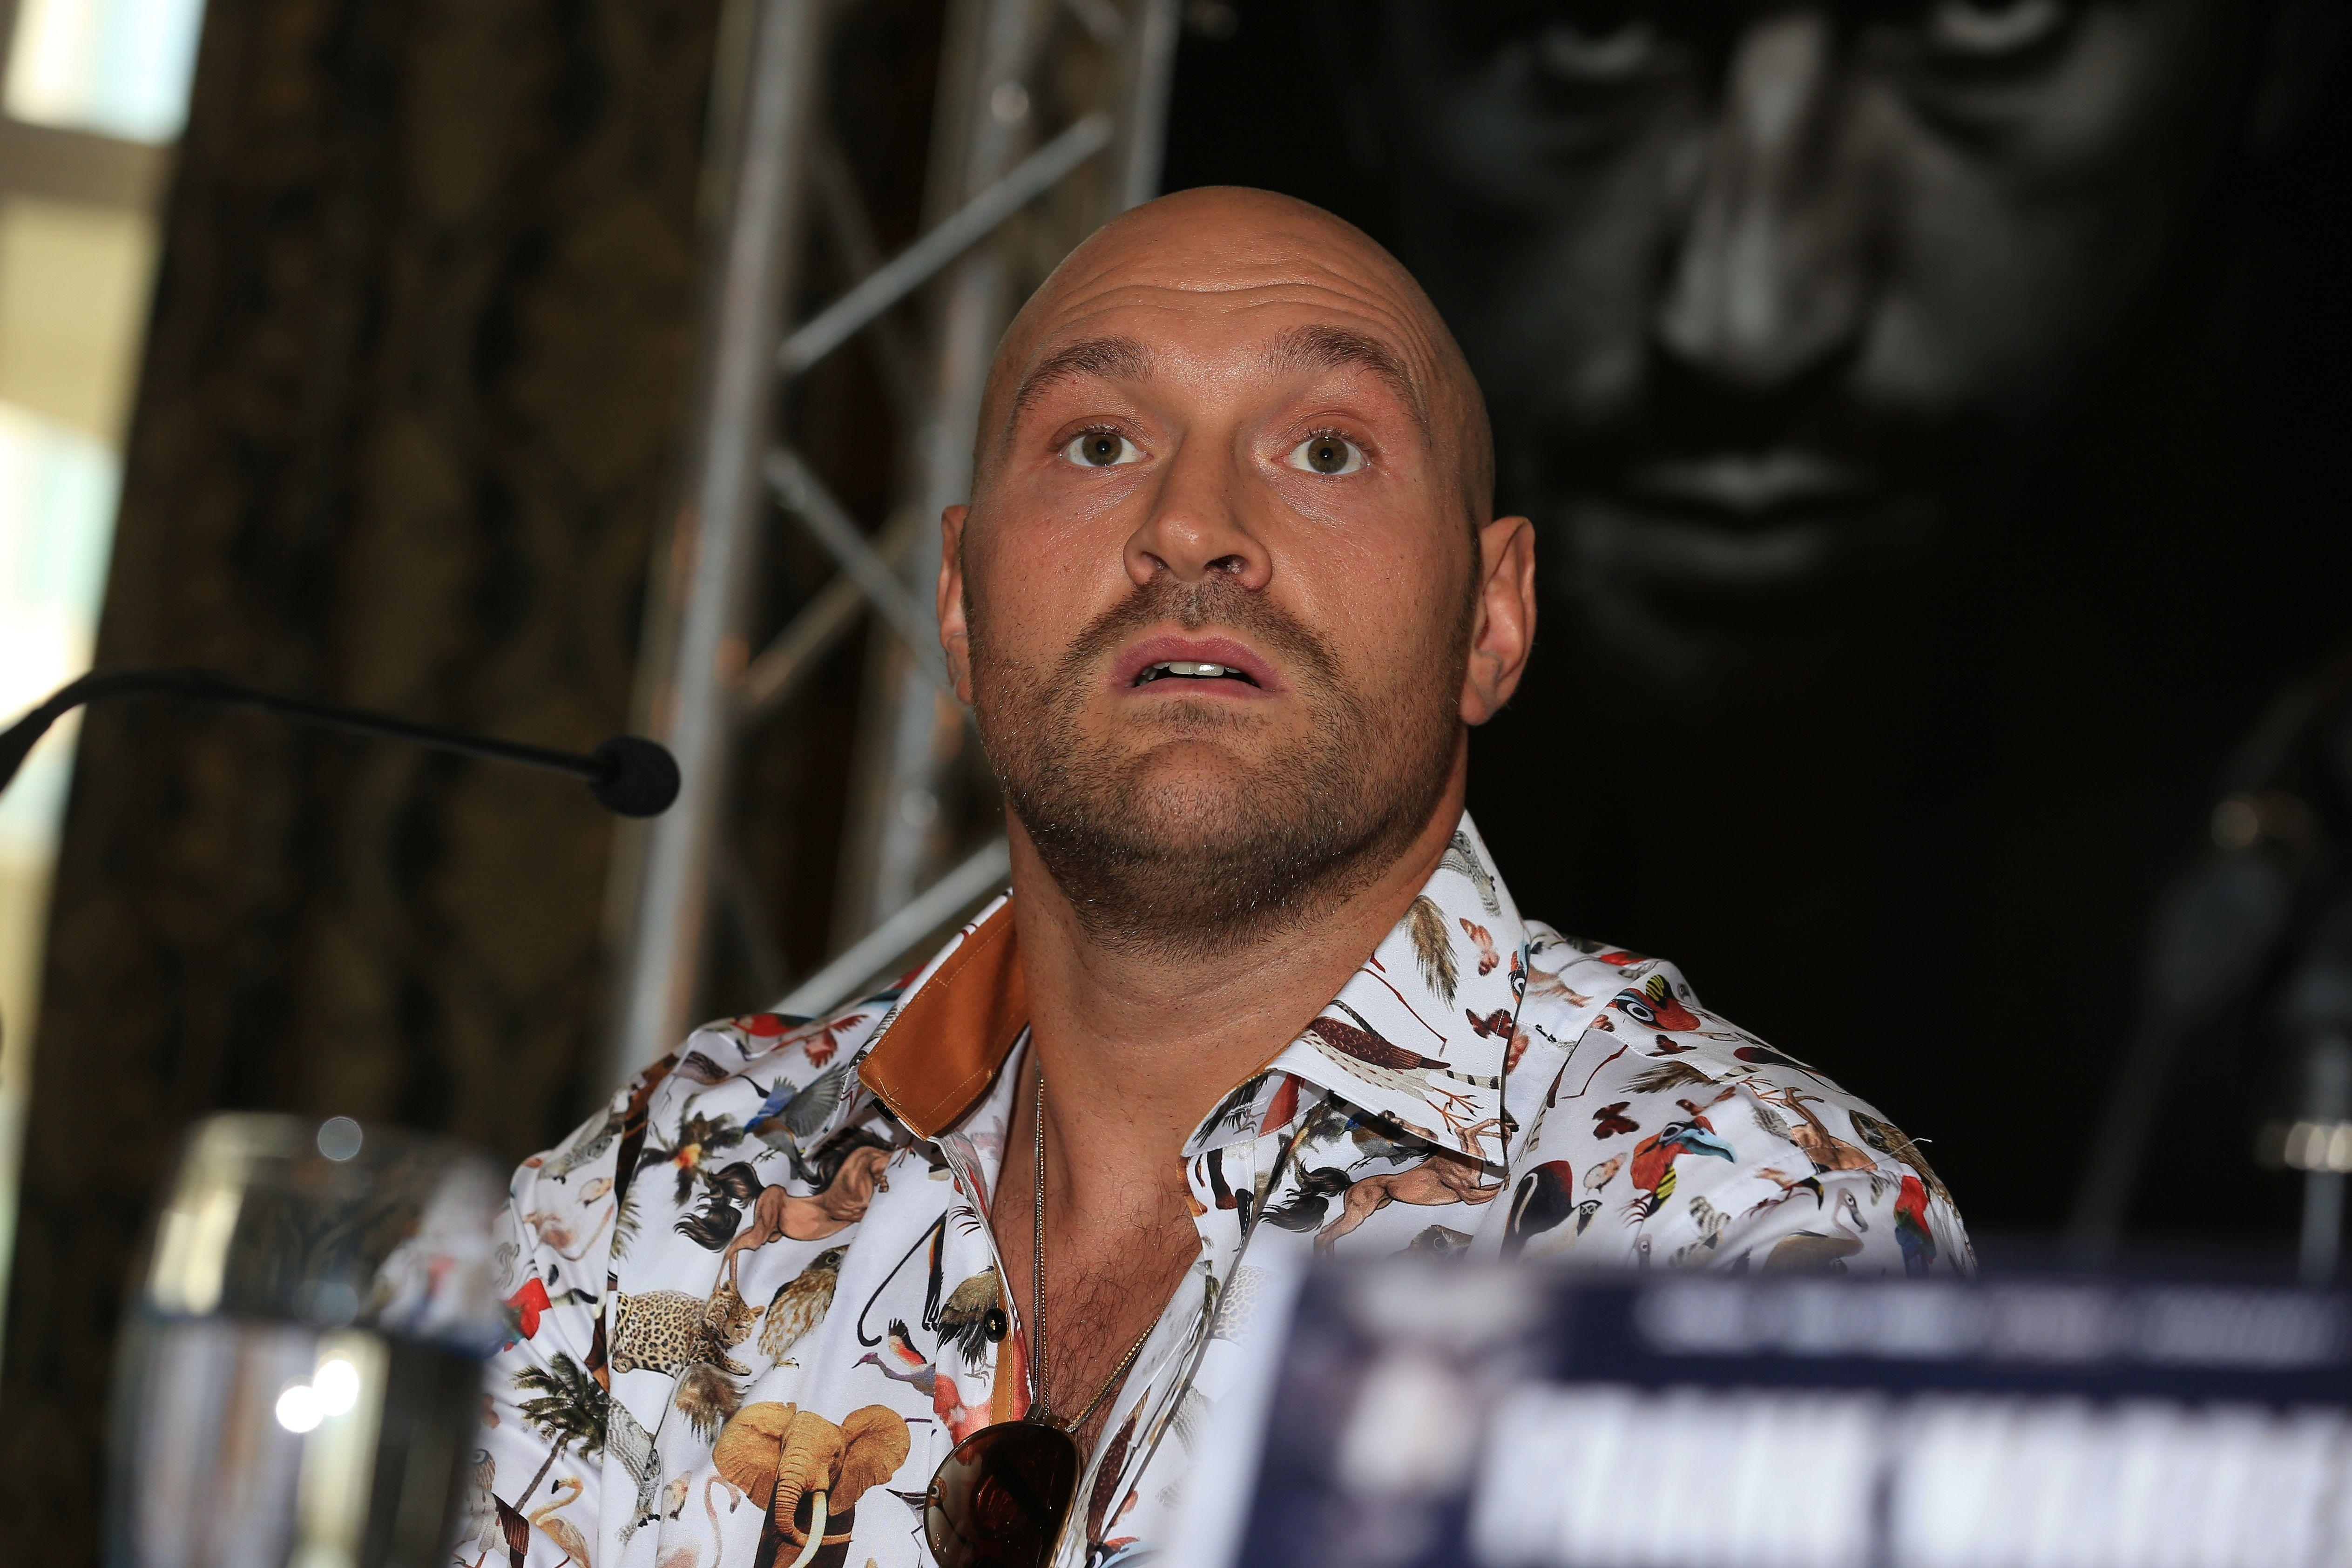 Whyte revealed he offered Fury the chance to fight in September, but was rejected